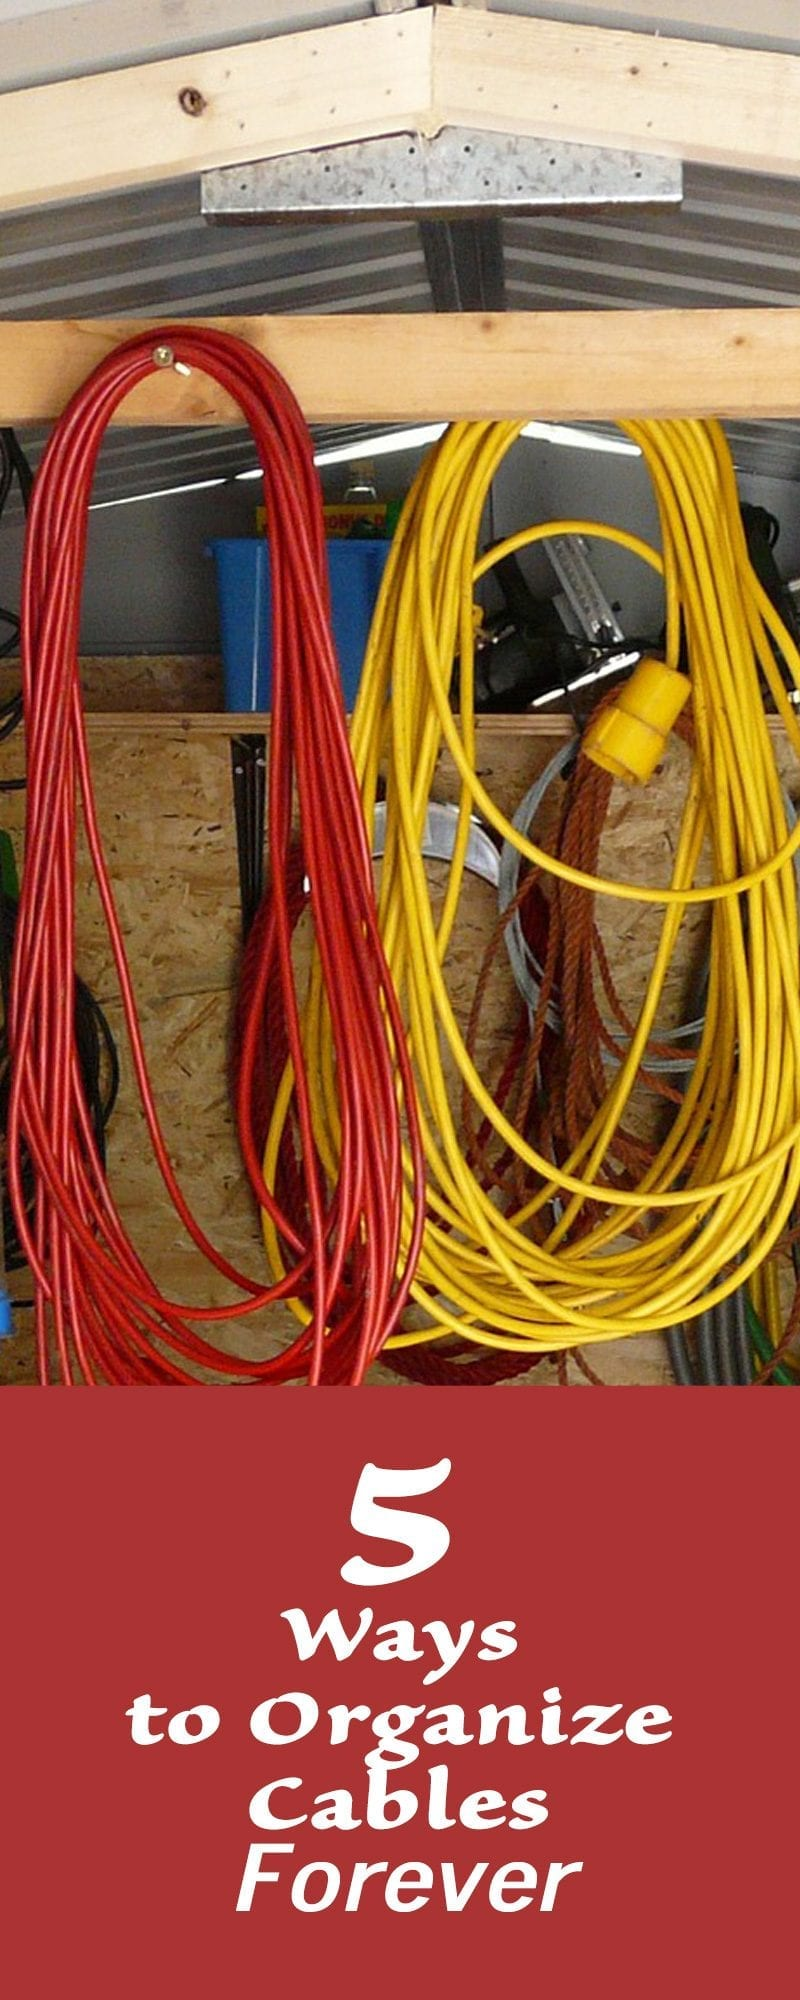 5 ways to organize cables forever